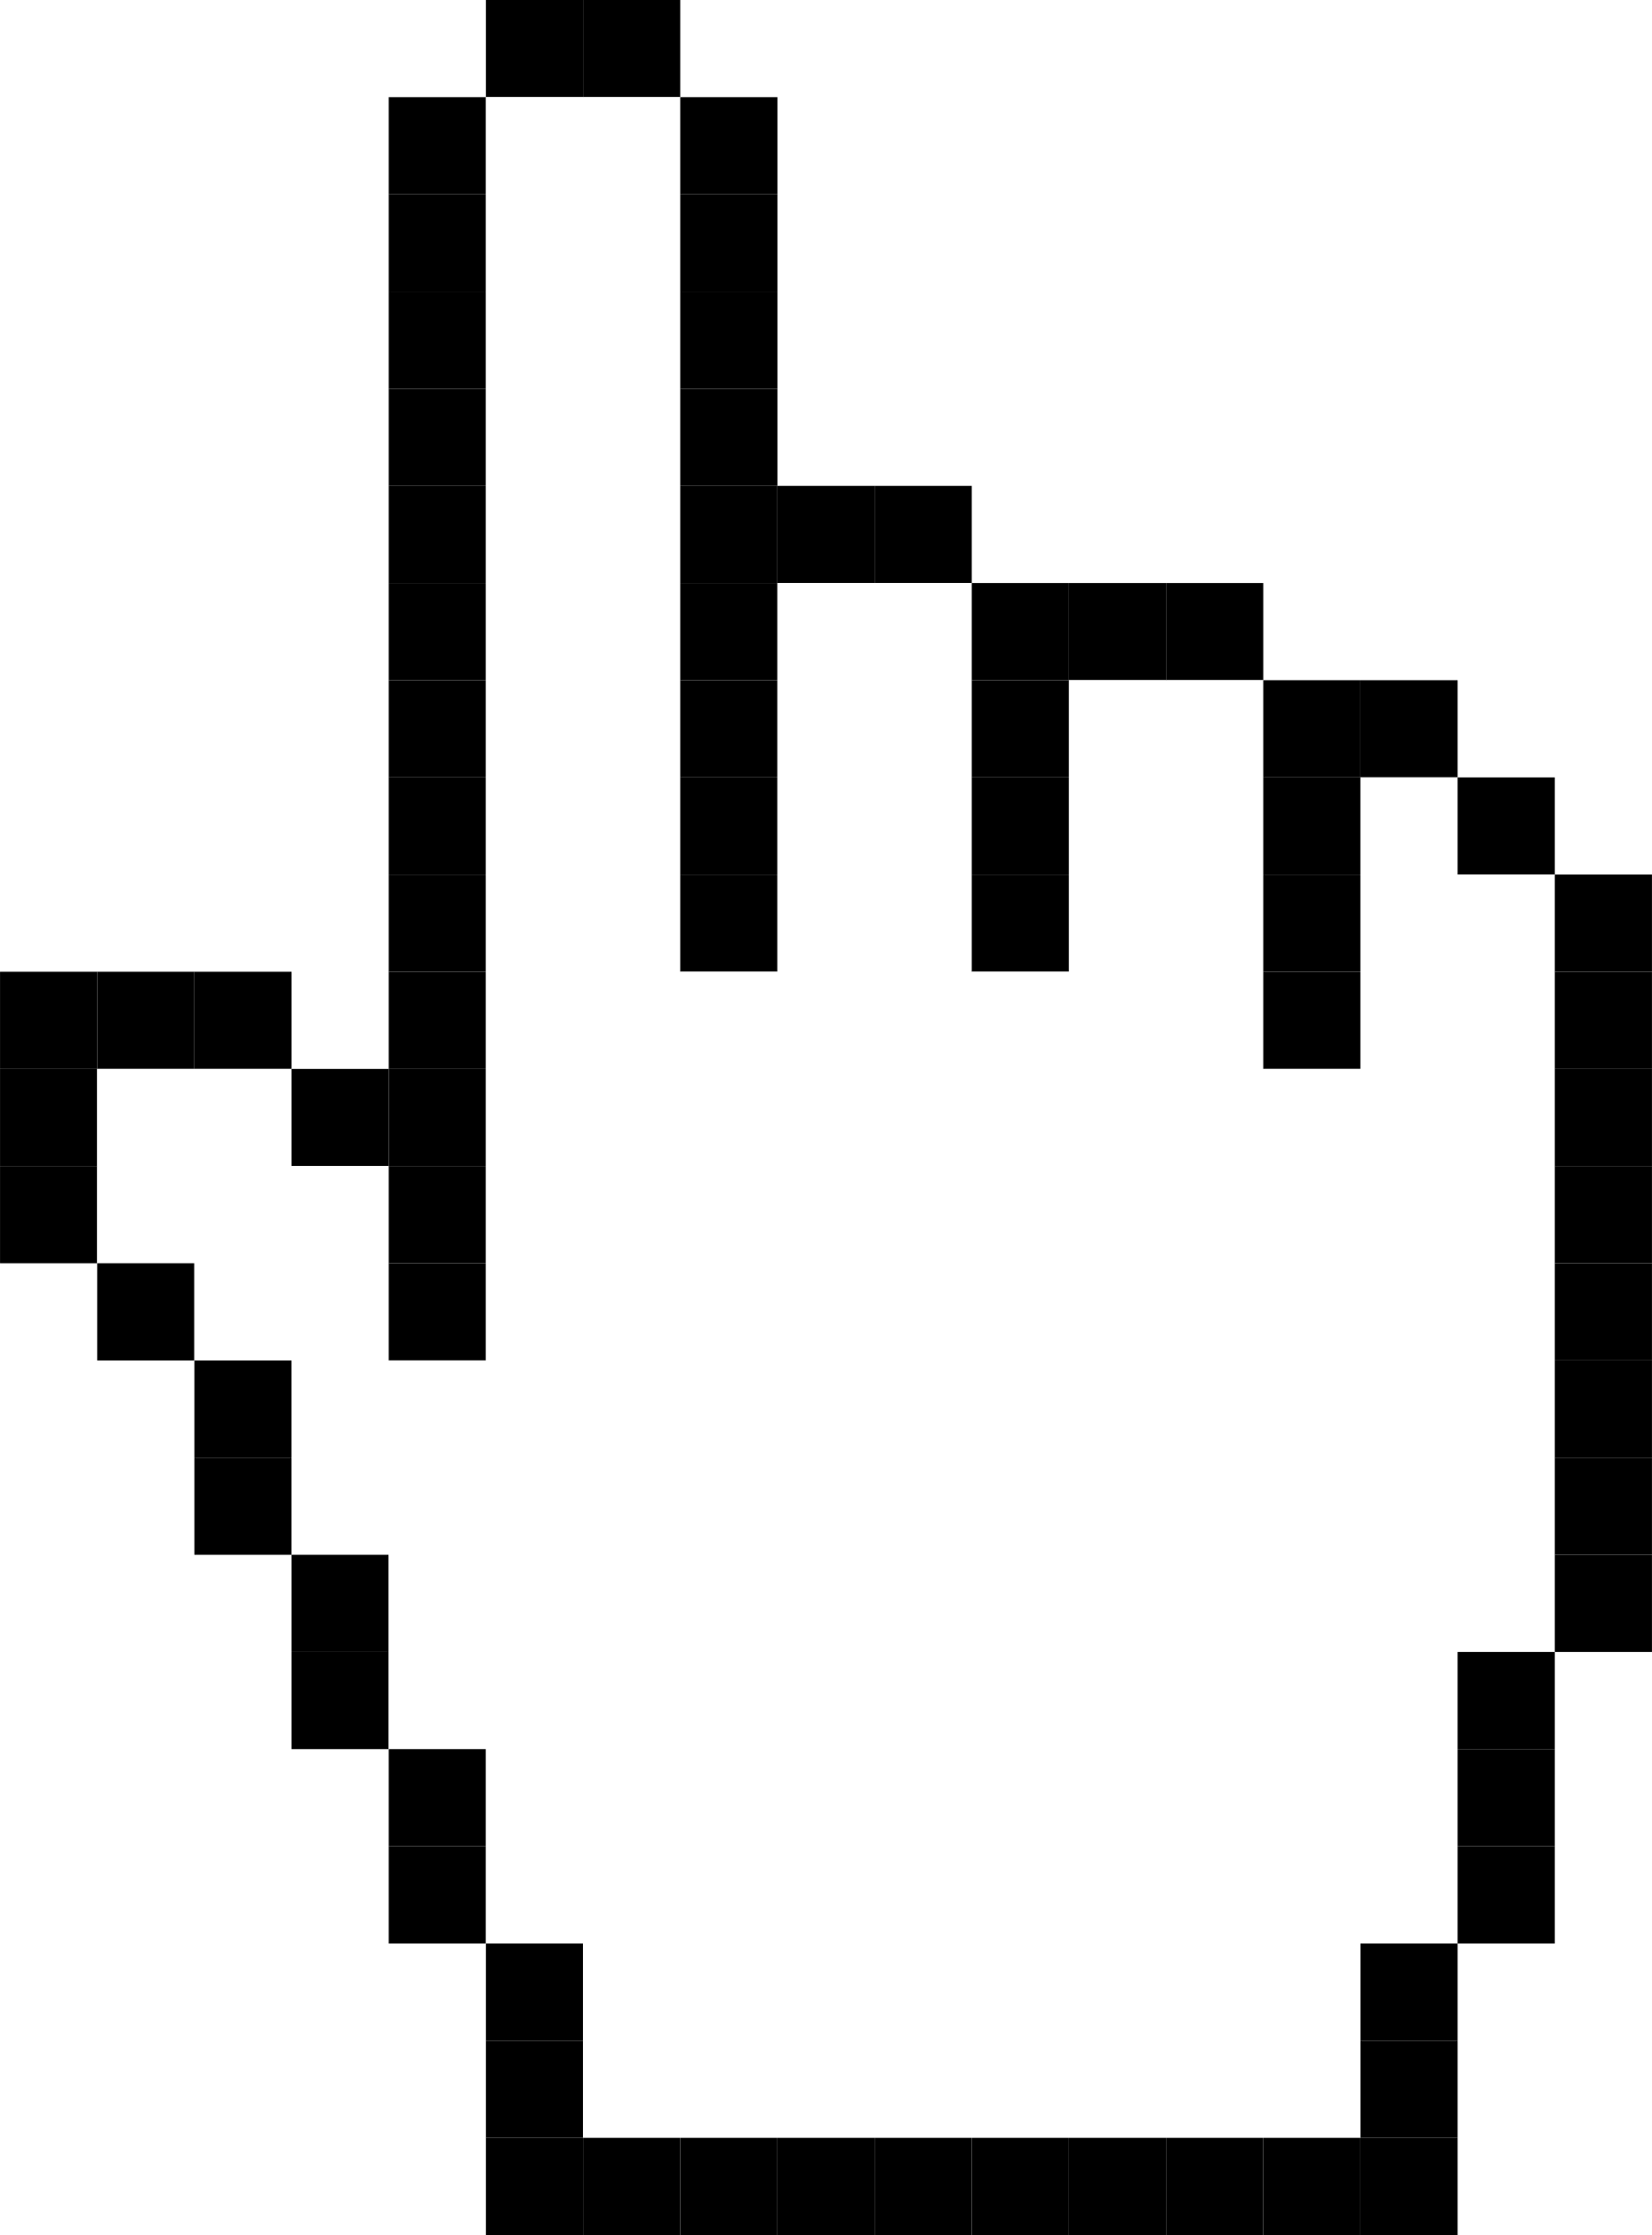 Mouse cursor hand transparent